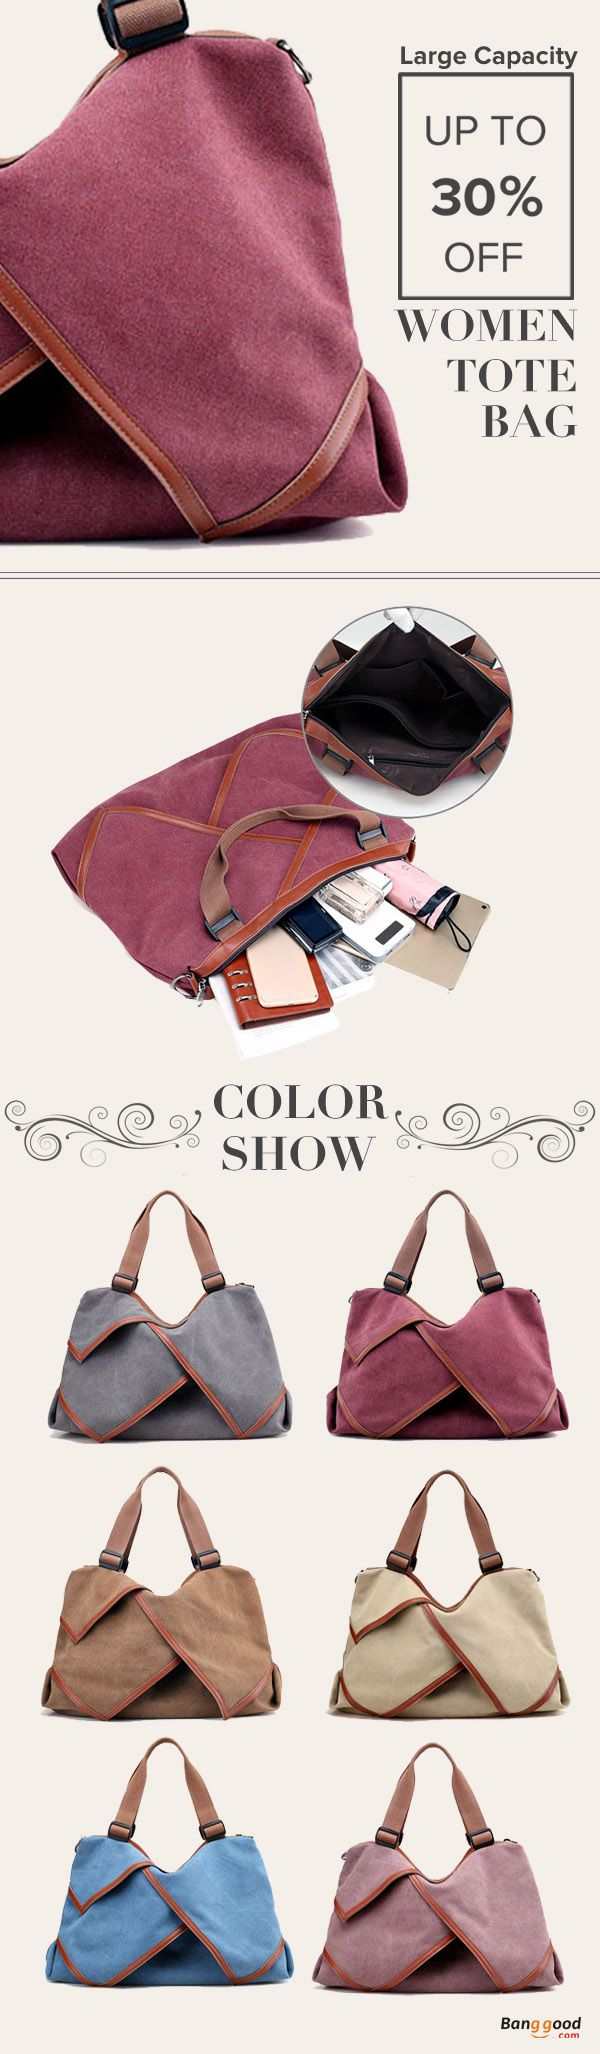 US$34.66+ Free shipping. Women canvas bags, shoulder bags, cowhide casual crossbody bags. Material: Canvas. Color: Beige, Blue, Brown Coffee, Gray, Purple Pink, Purple Red. More cheap, shop now!